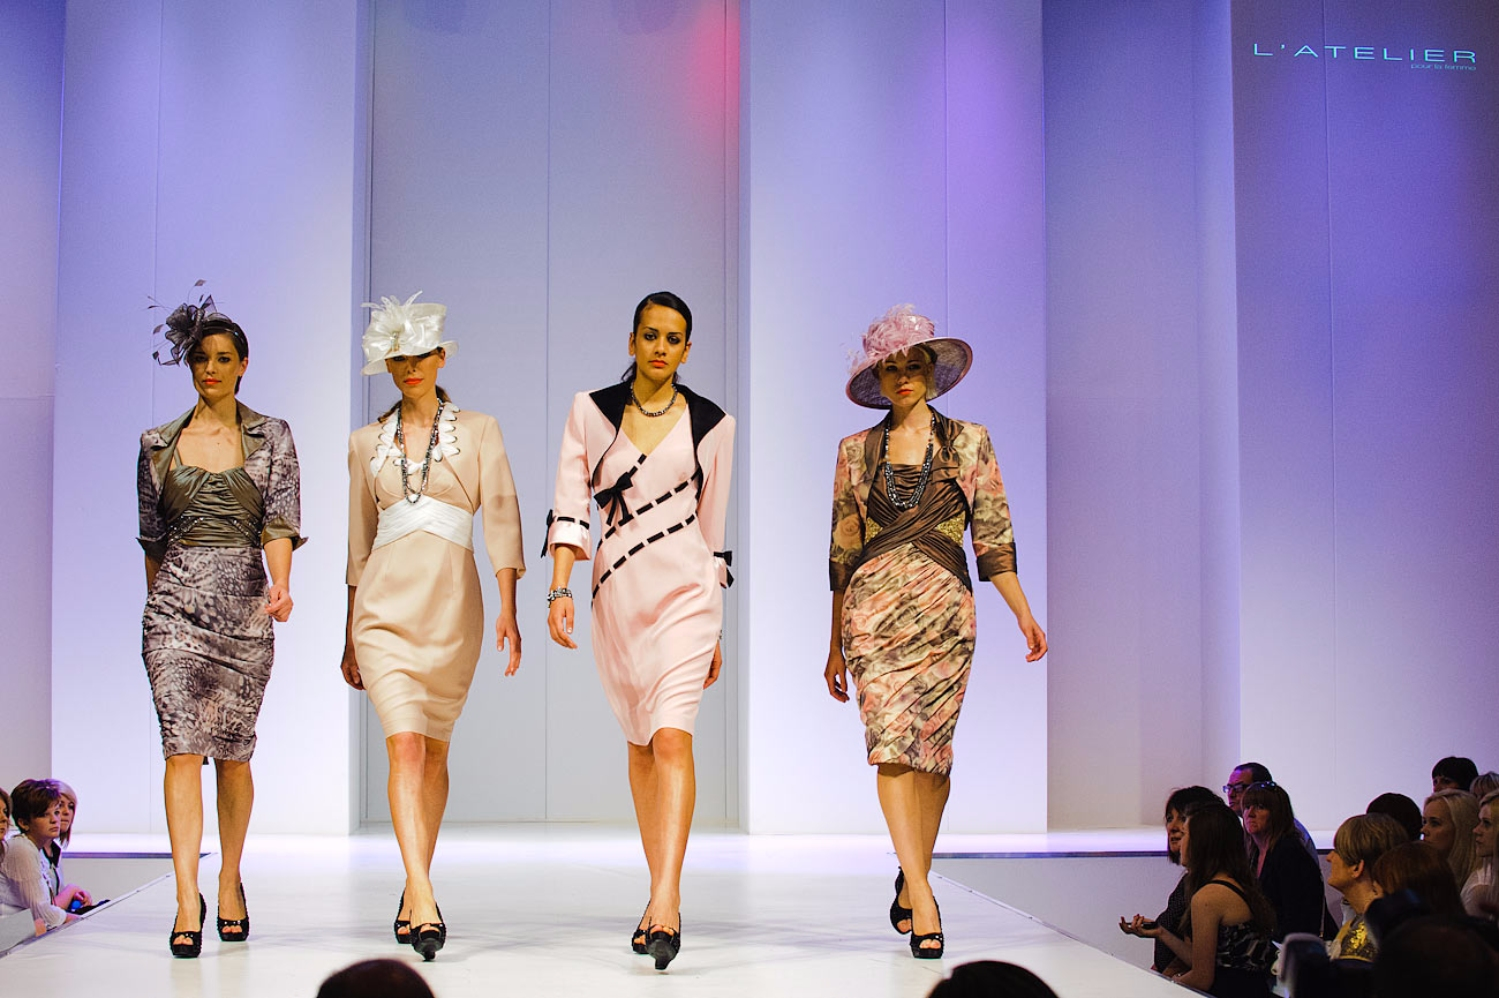 latelier ladies daywear at moda 2013ss fashion show